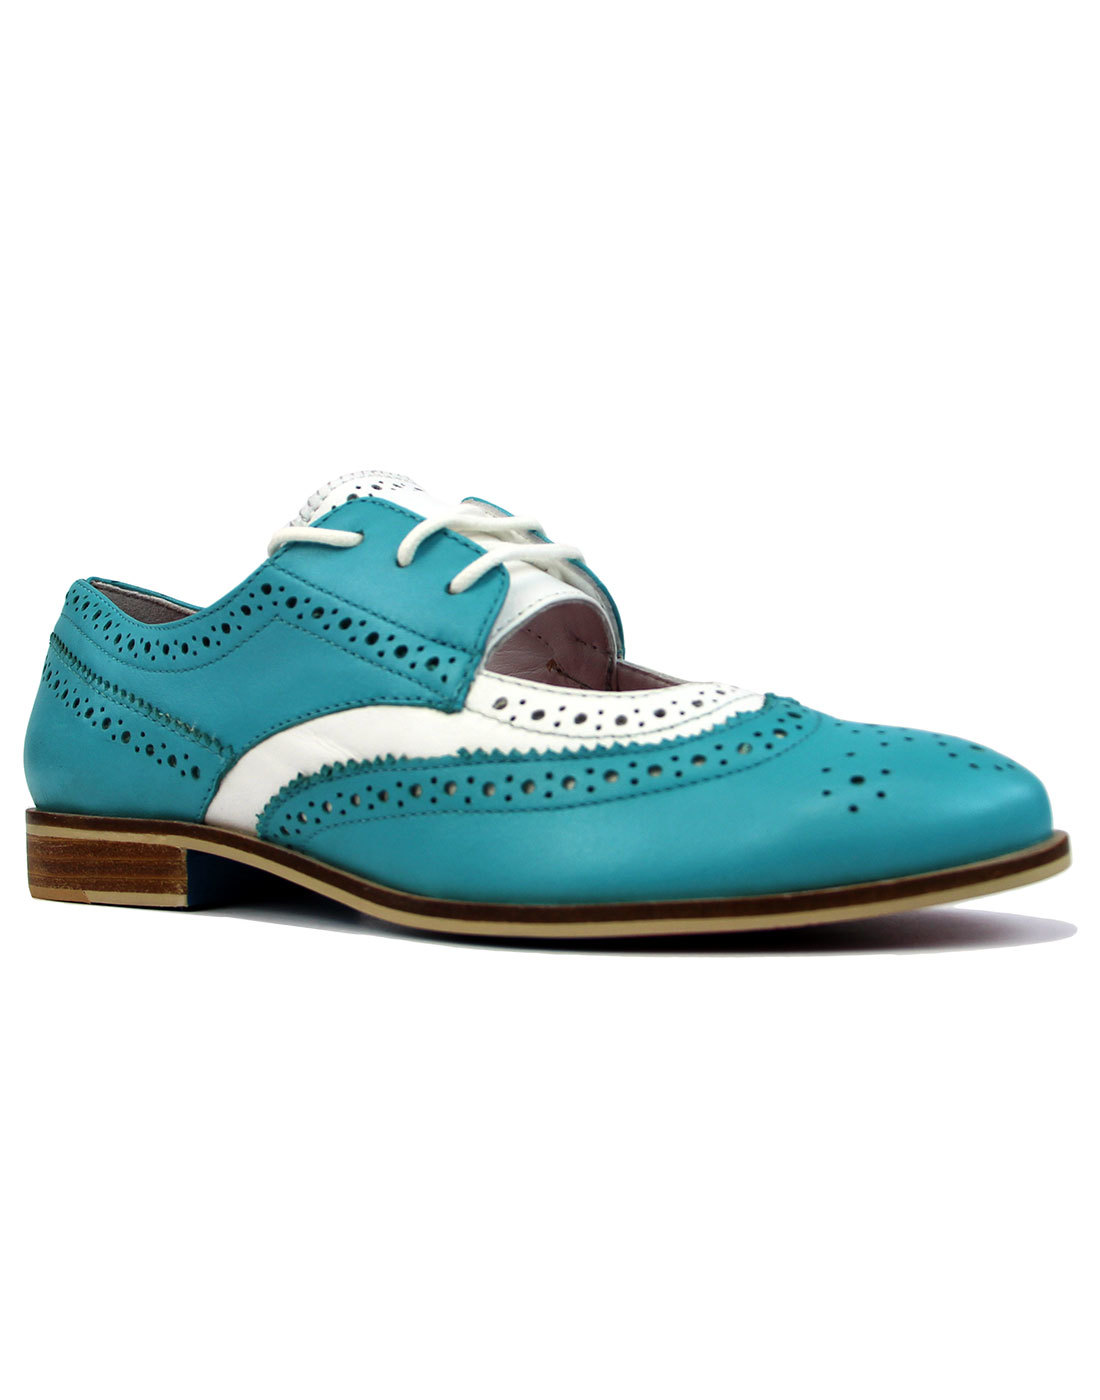 Dockery JASPER JAMES by LACEYS Retro 60s Brogues T